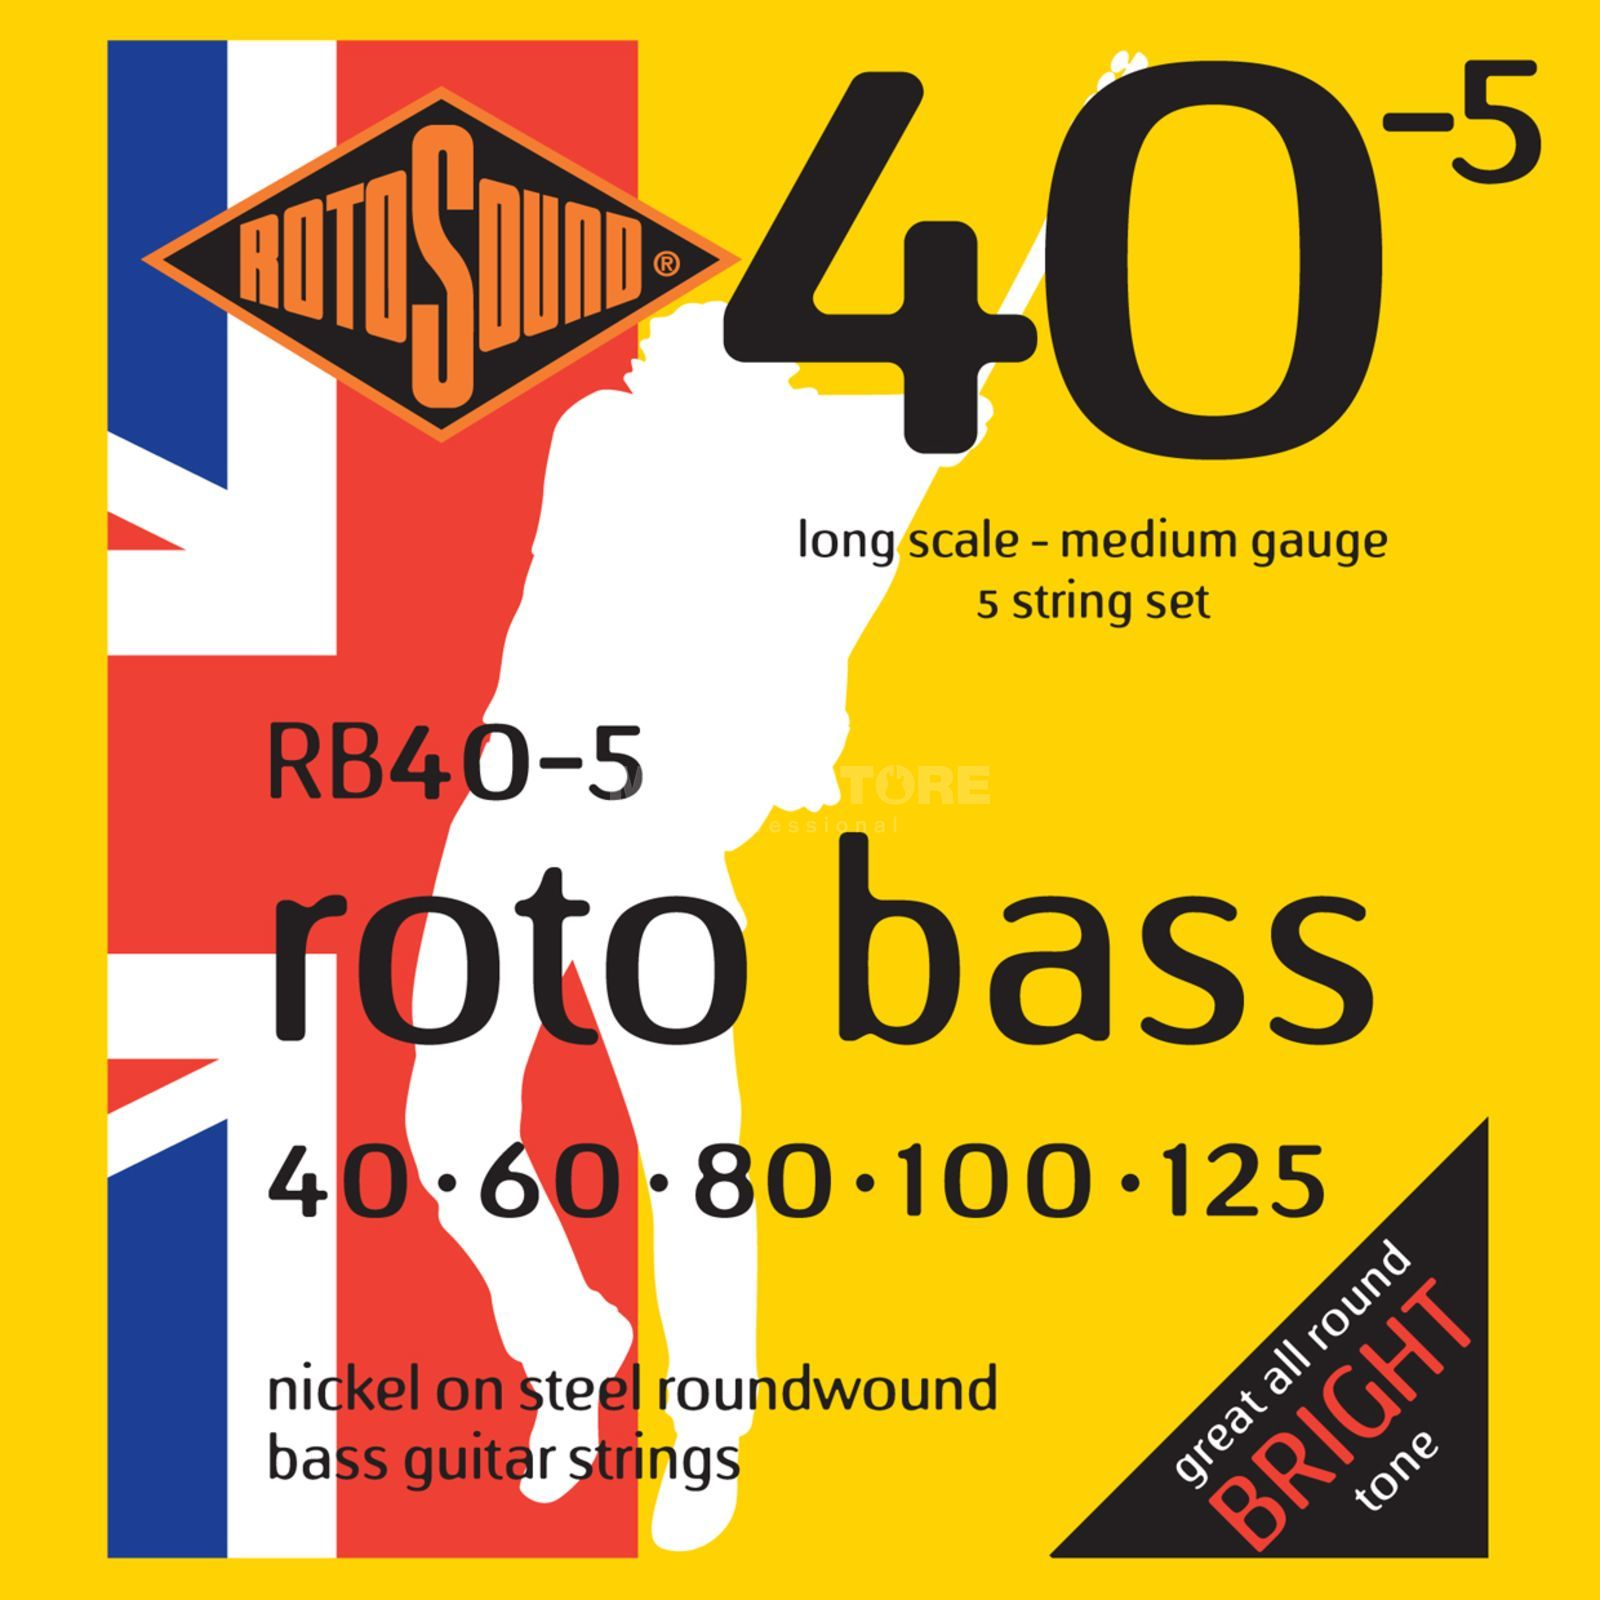 Rotosound Bass Strings RB405 5 Set 40-125 redo Bass, Nickel on Steel Immagine prodotto